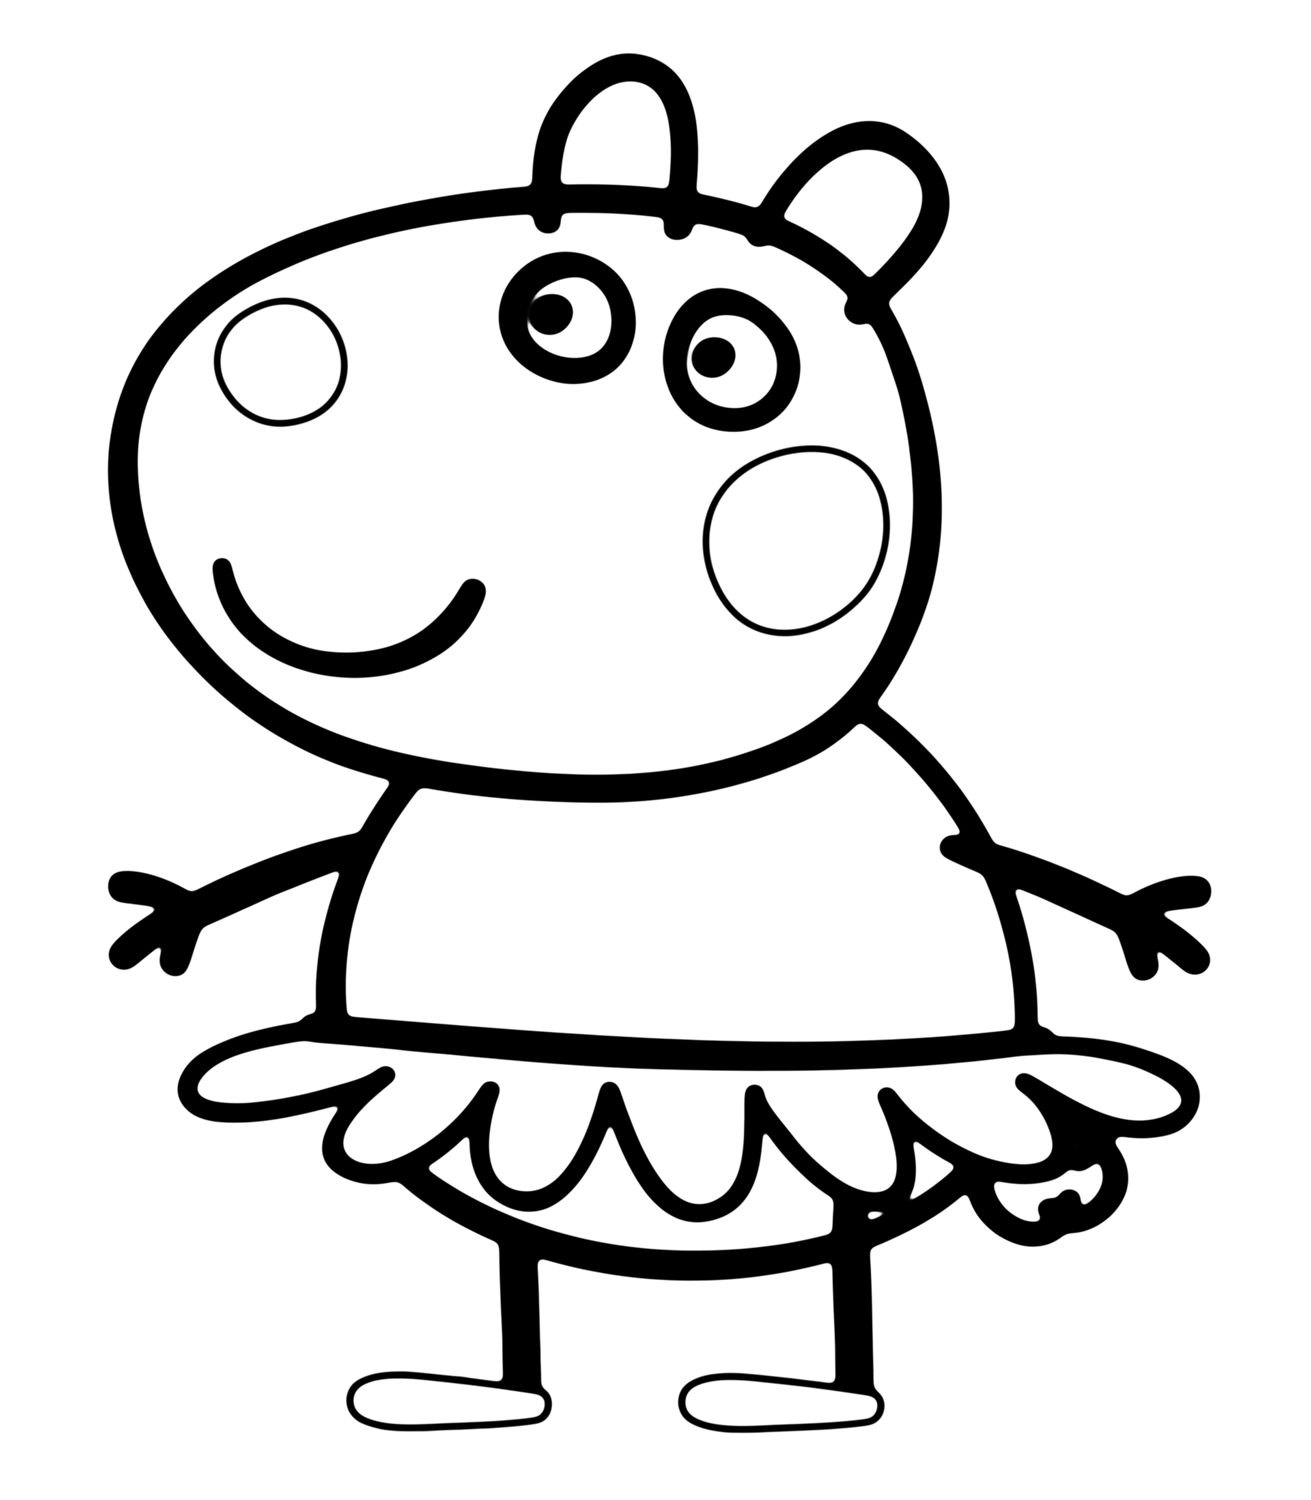 pepa pig coloring pages peppa pig colouring pages printable pictures and sheets pages pig pepa coloring